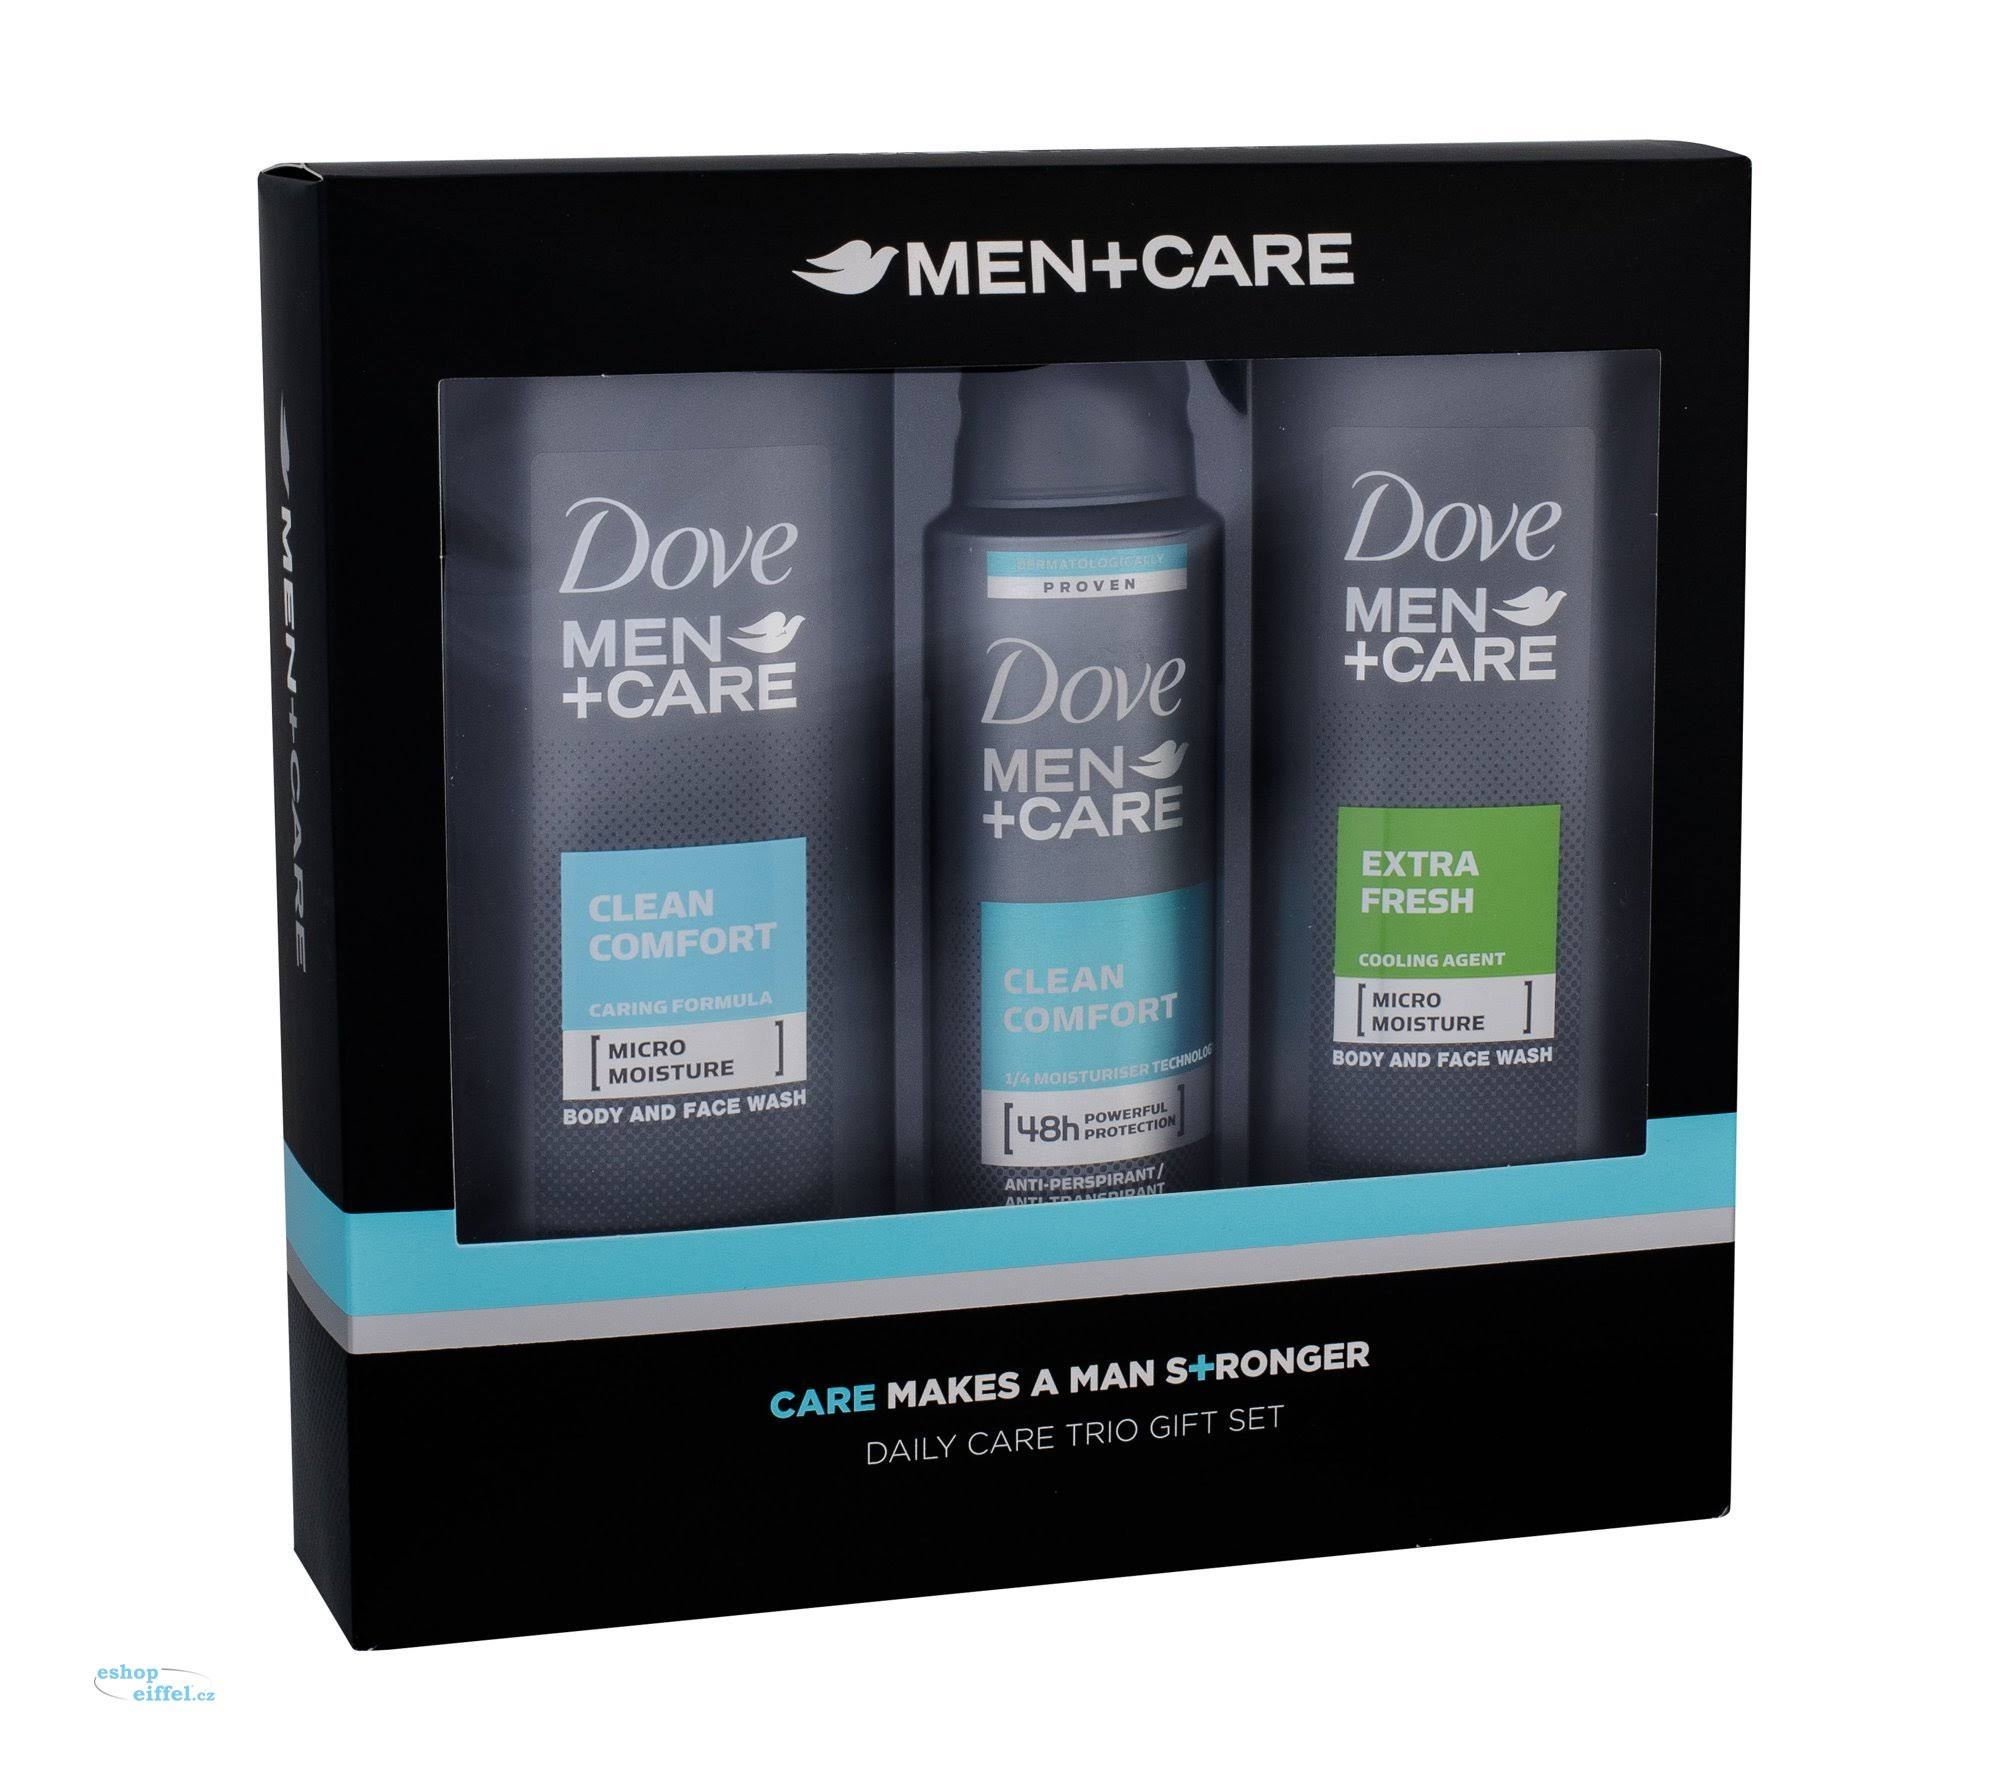 Dove Men Plus Care Daily Care Trio Gift Set